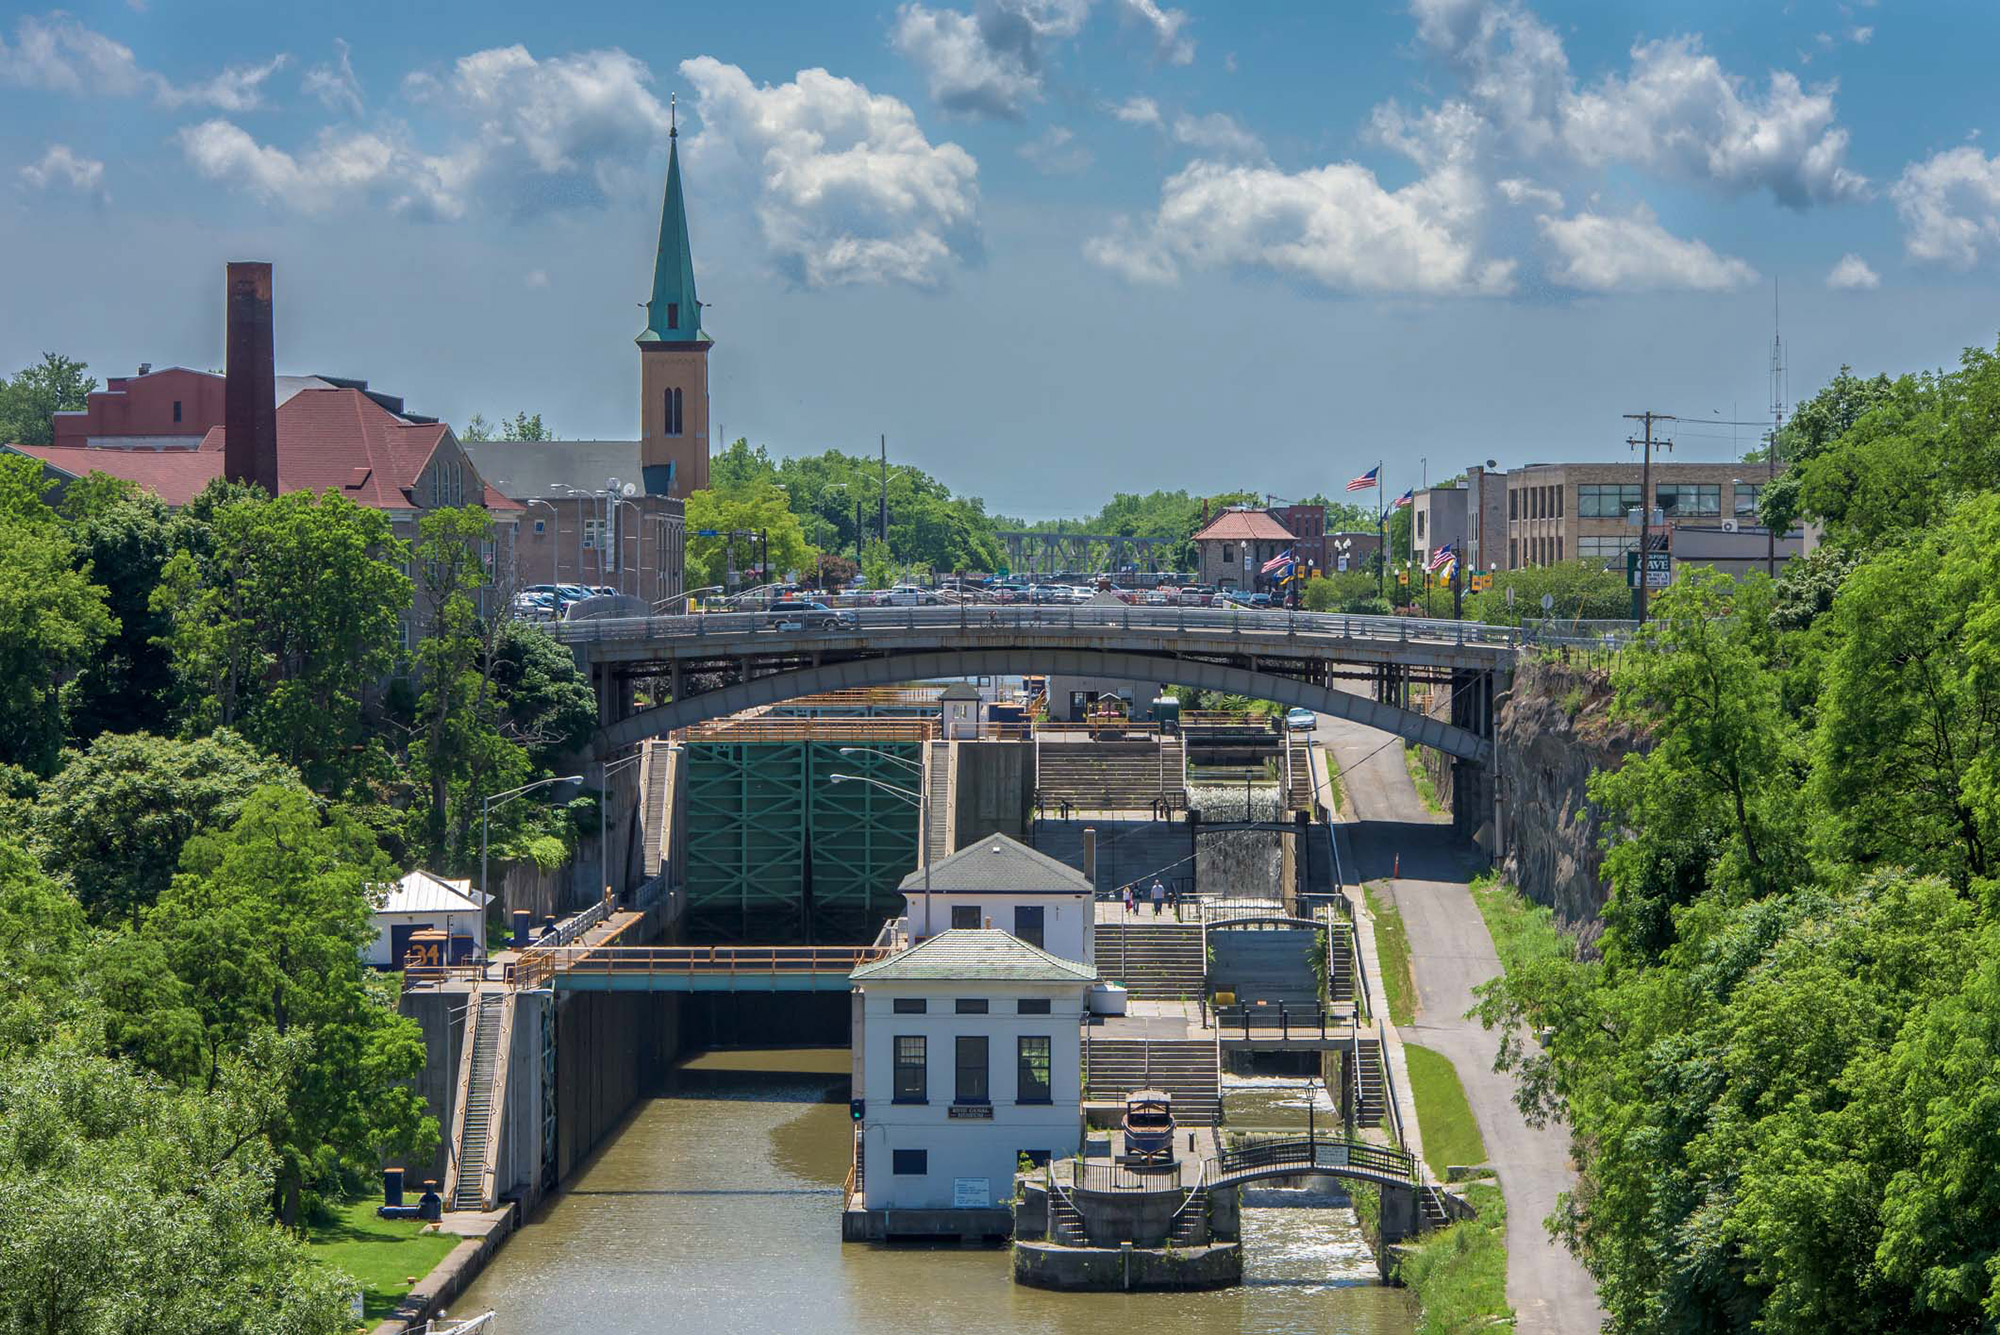 Picturesque Lockport. | Credit: Robert Dunn